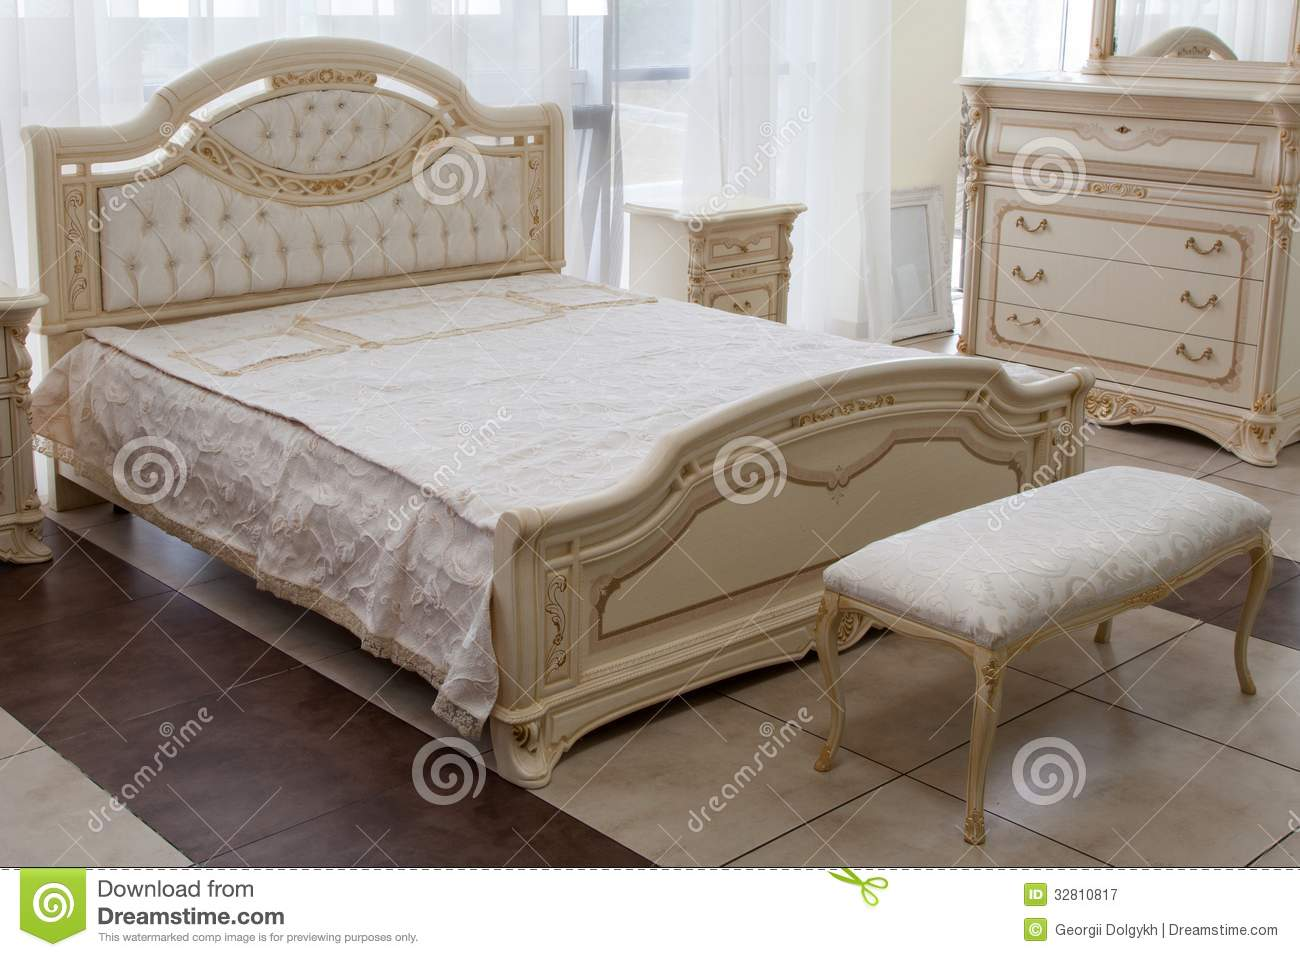 Awesome chambre a coucher royal italy images design for Chambre moderne design